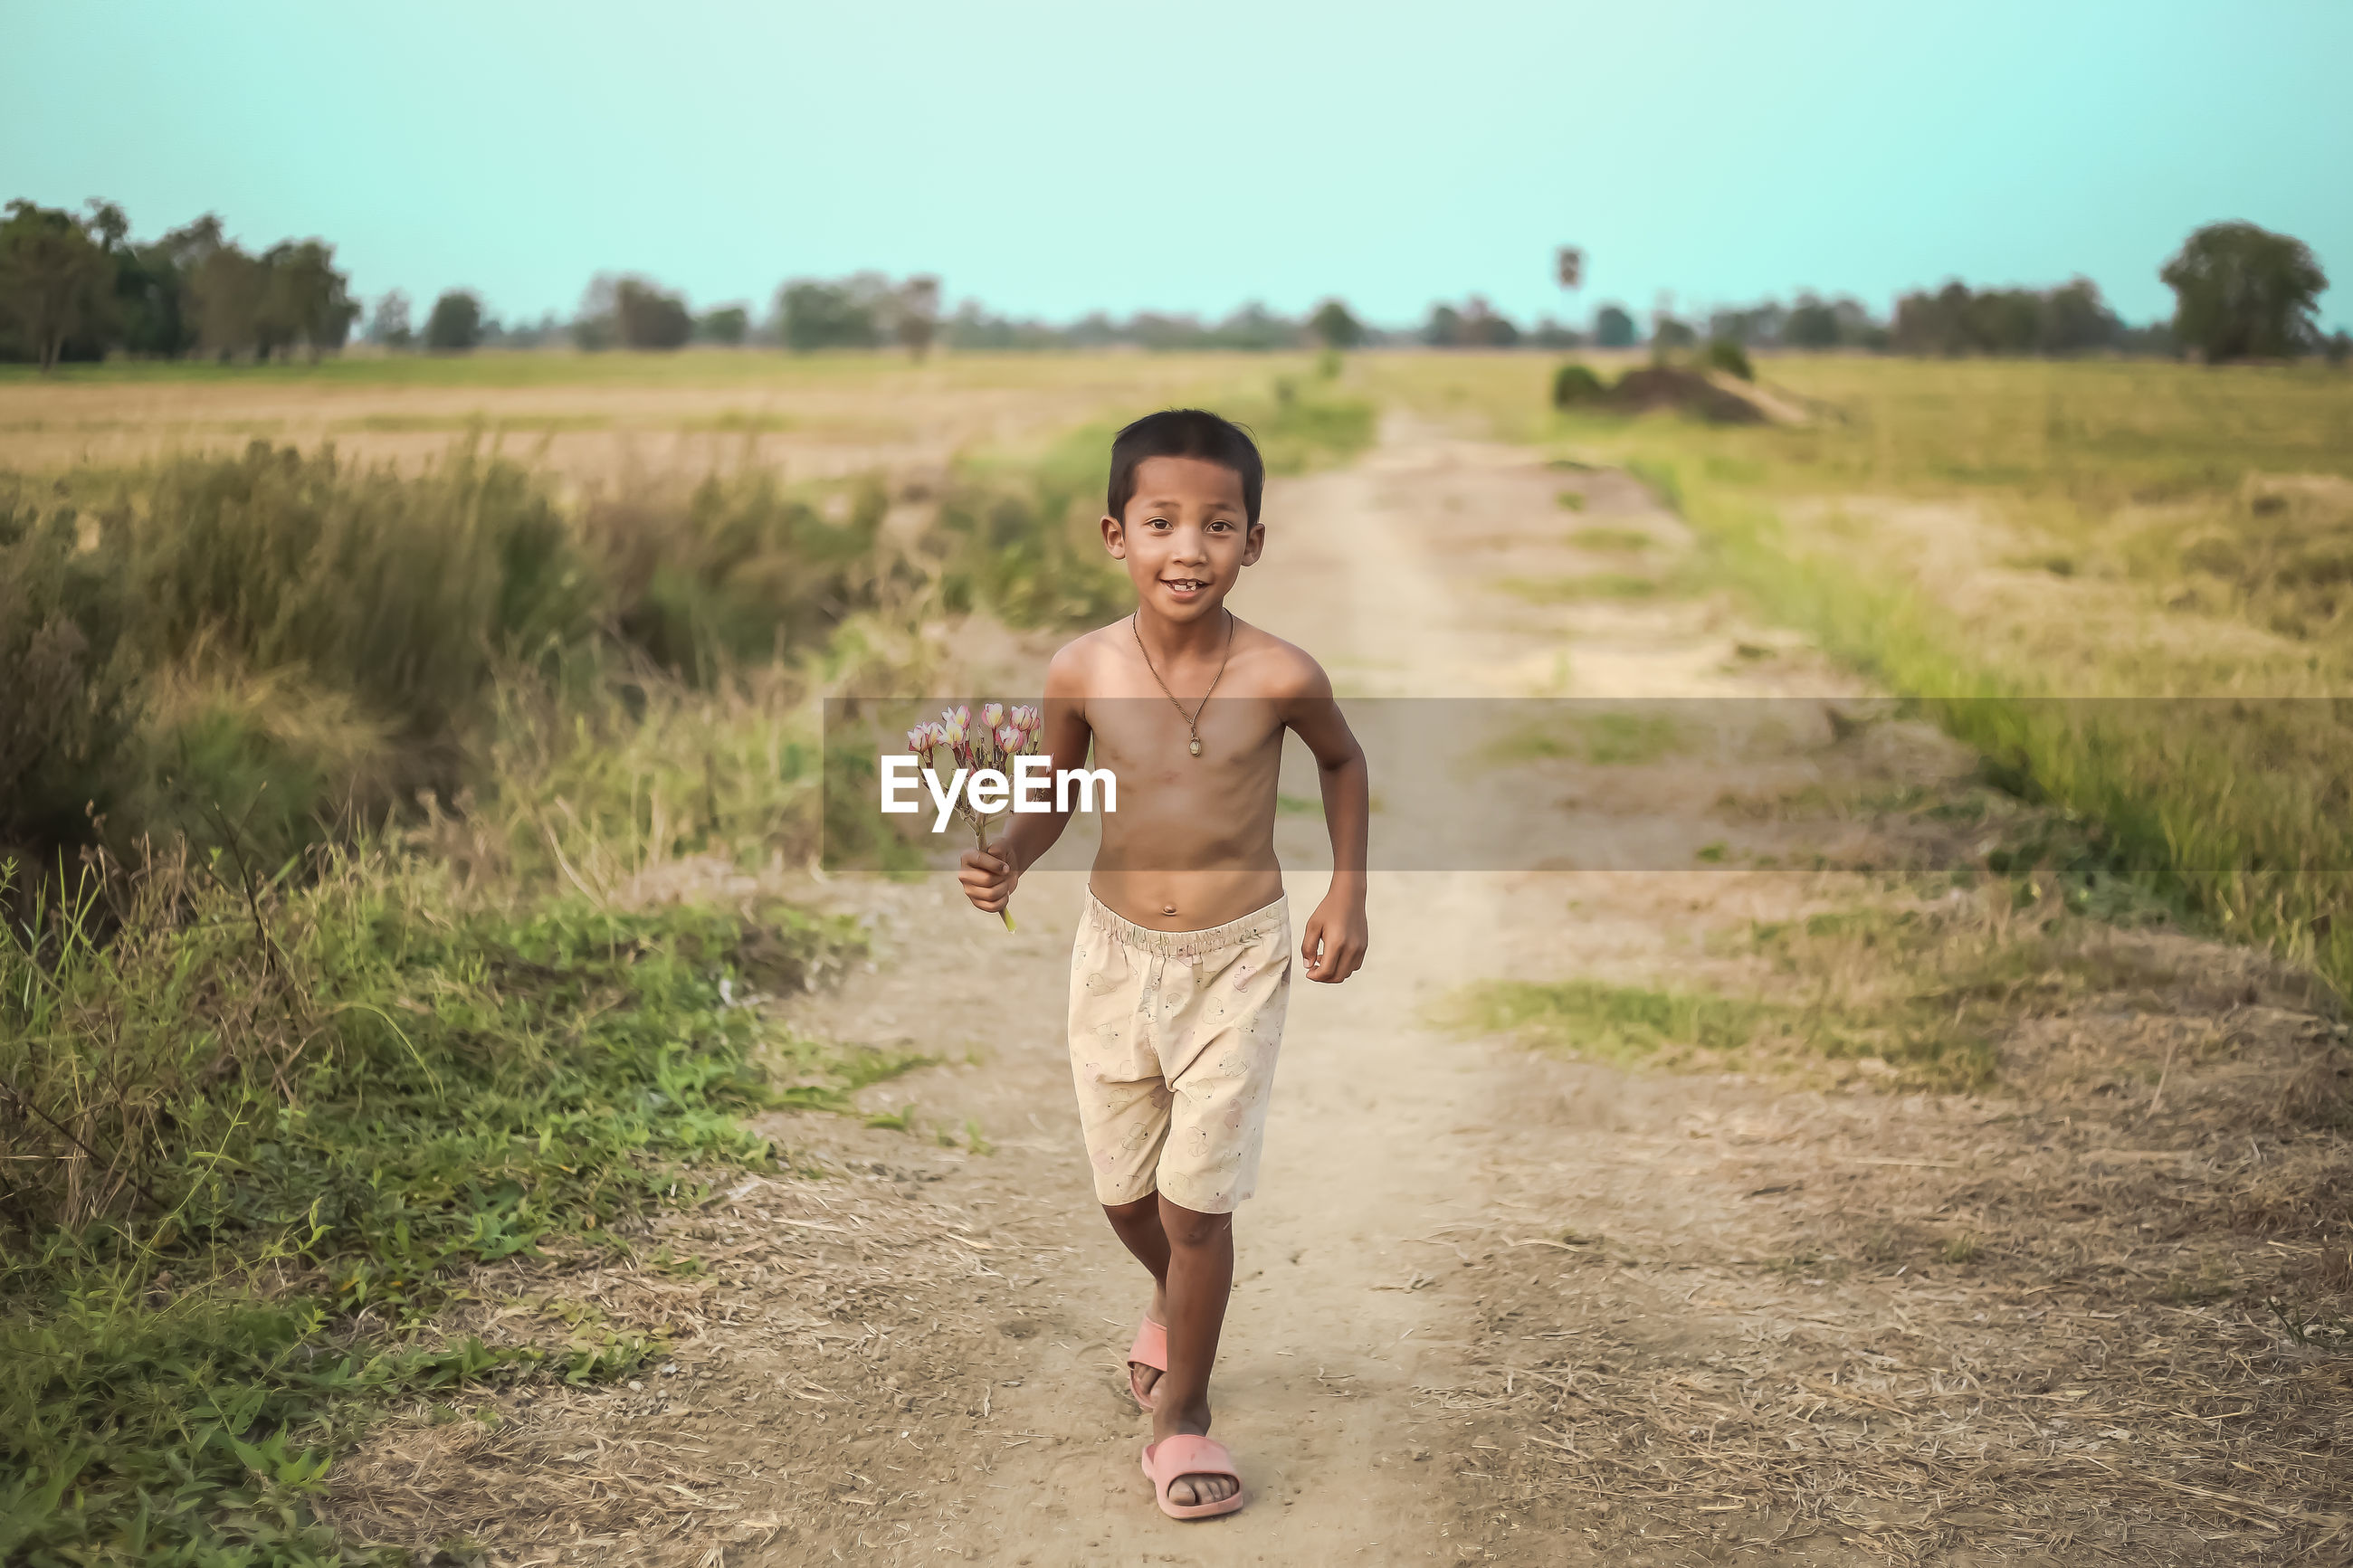 Portrait of boy with flowers running on dirt road against clear sky